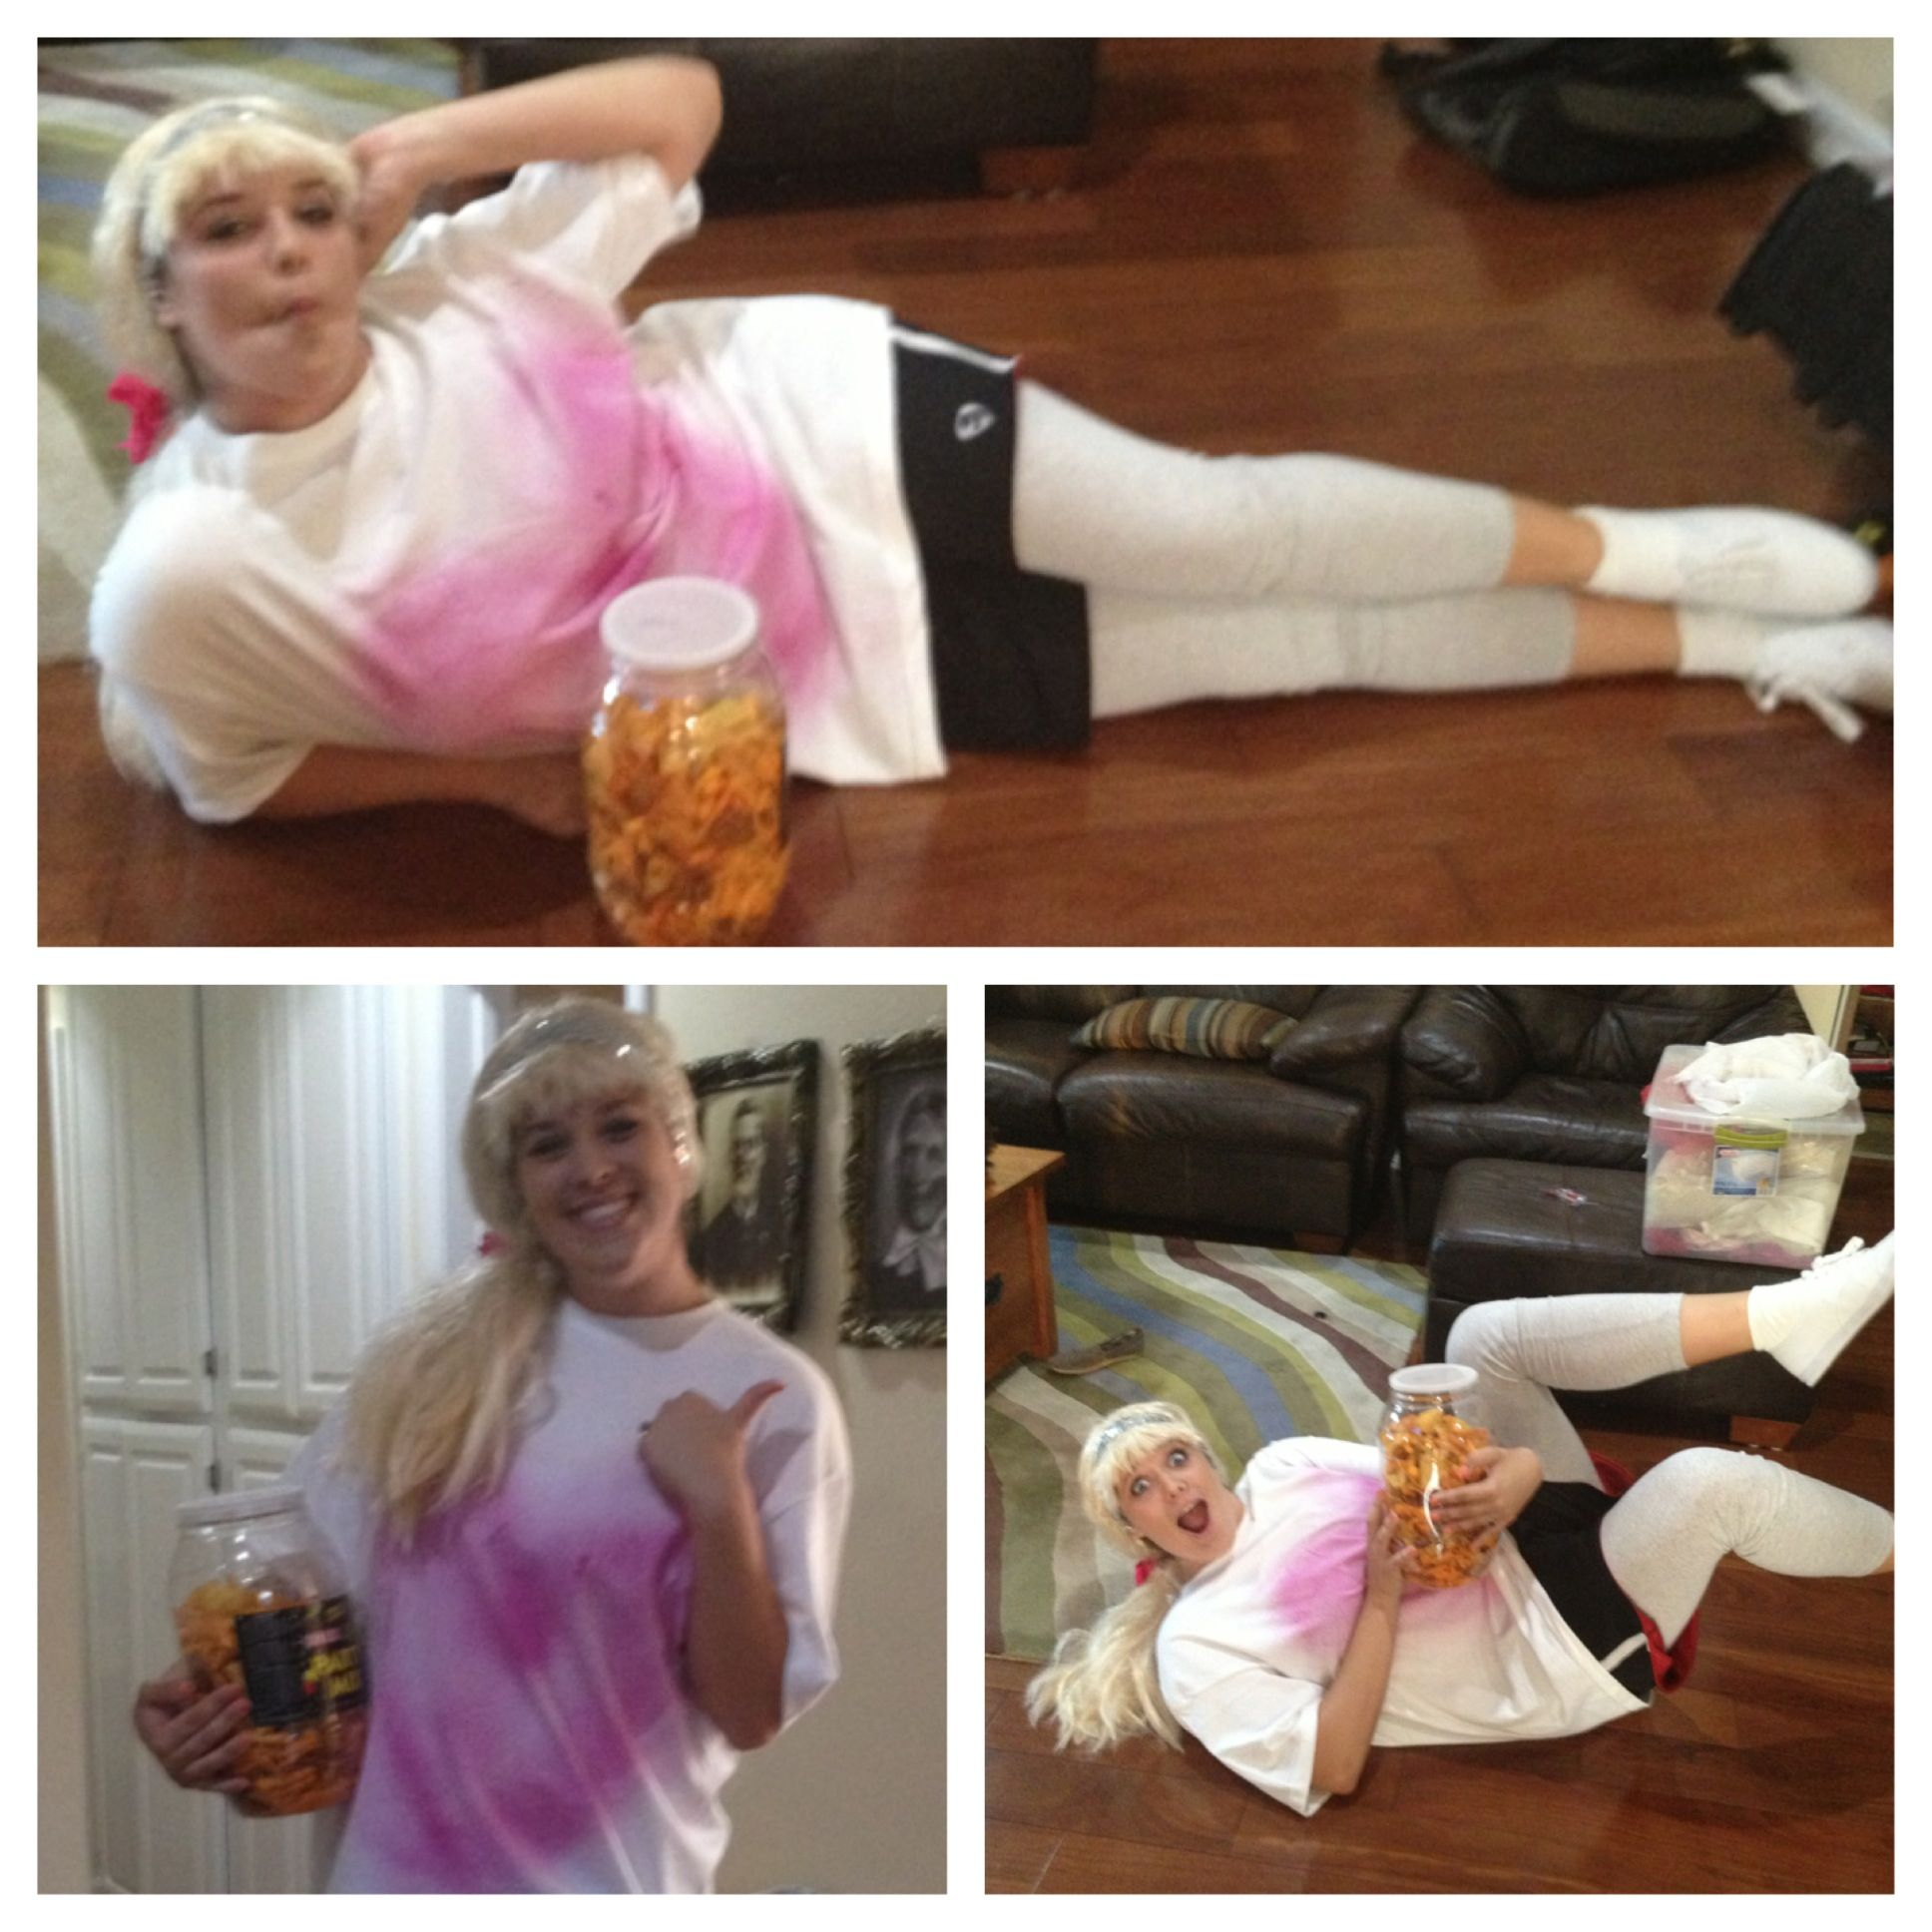 Fat Amy Halloween costume!!1 Iu0027m doing this next year hahahaha  sc 1 st  Pinterest & Fat Amy Halloween costume!!1 Iu0027m doing this next year hahahaha | Fat ...